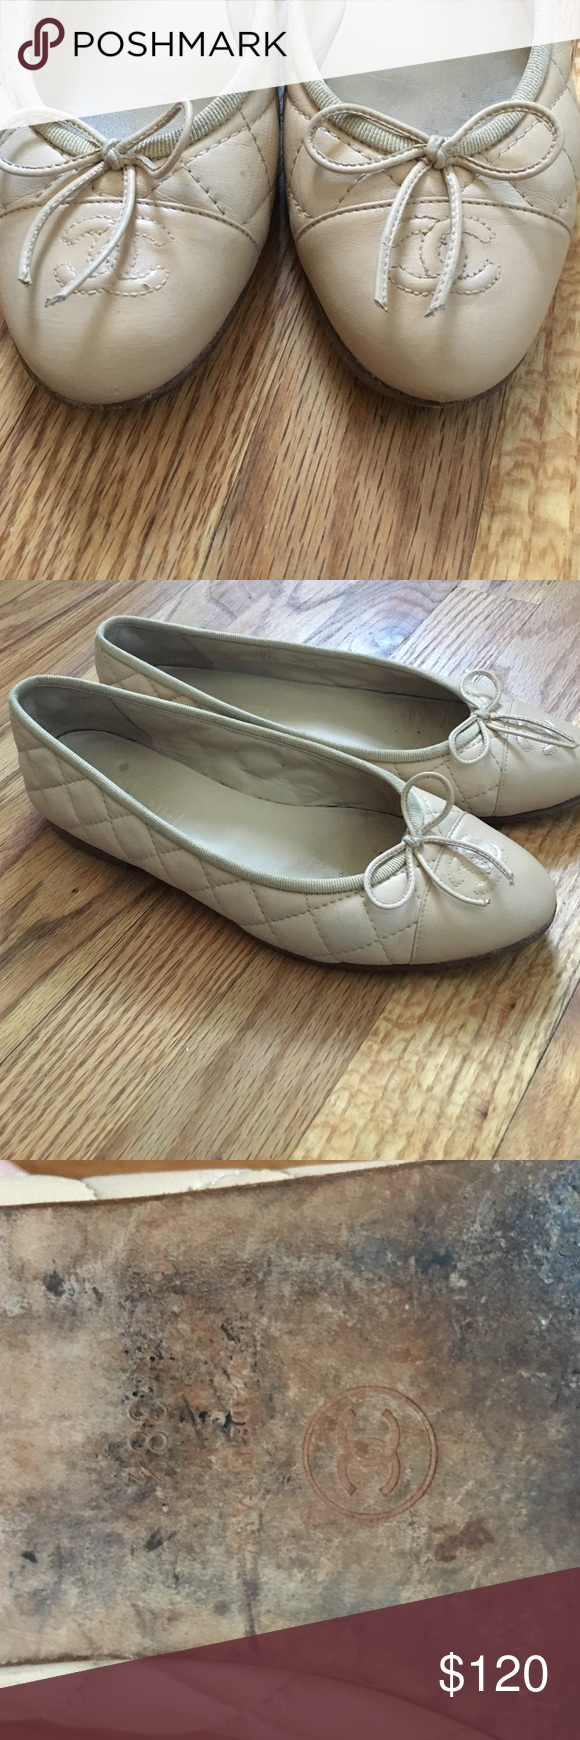 a4e8e2ec20c Chanel tonal quilted ballet flats 38 1 2 nude pink